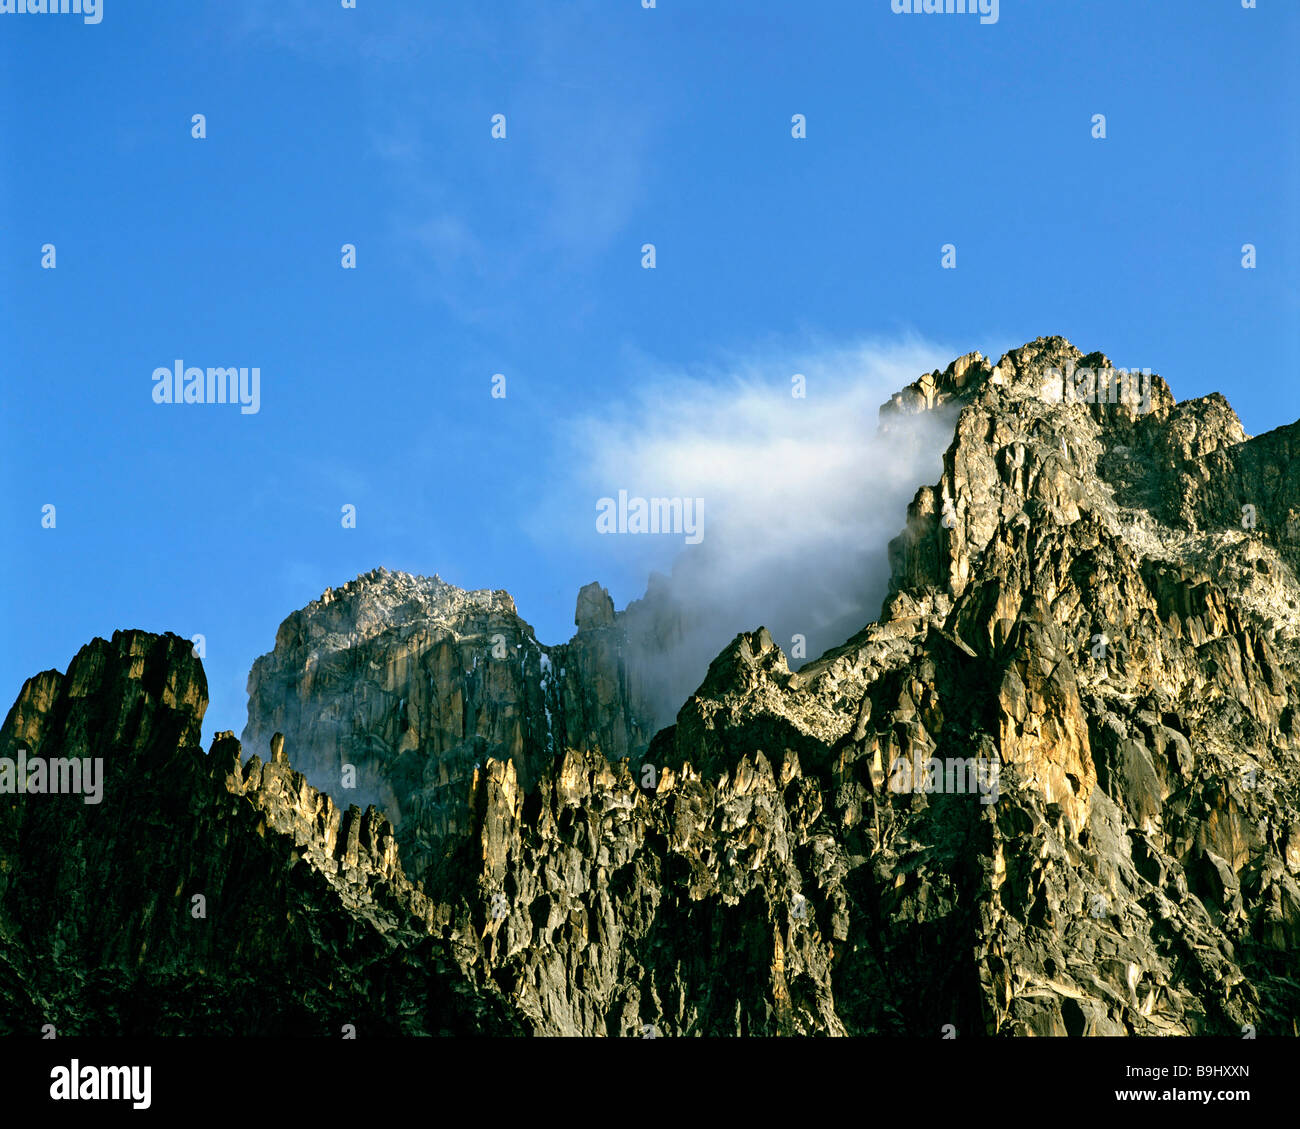 Mount Kenia, Kenia, Central Africa - Stock Image